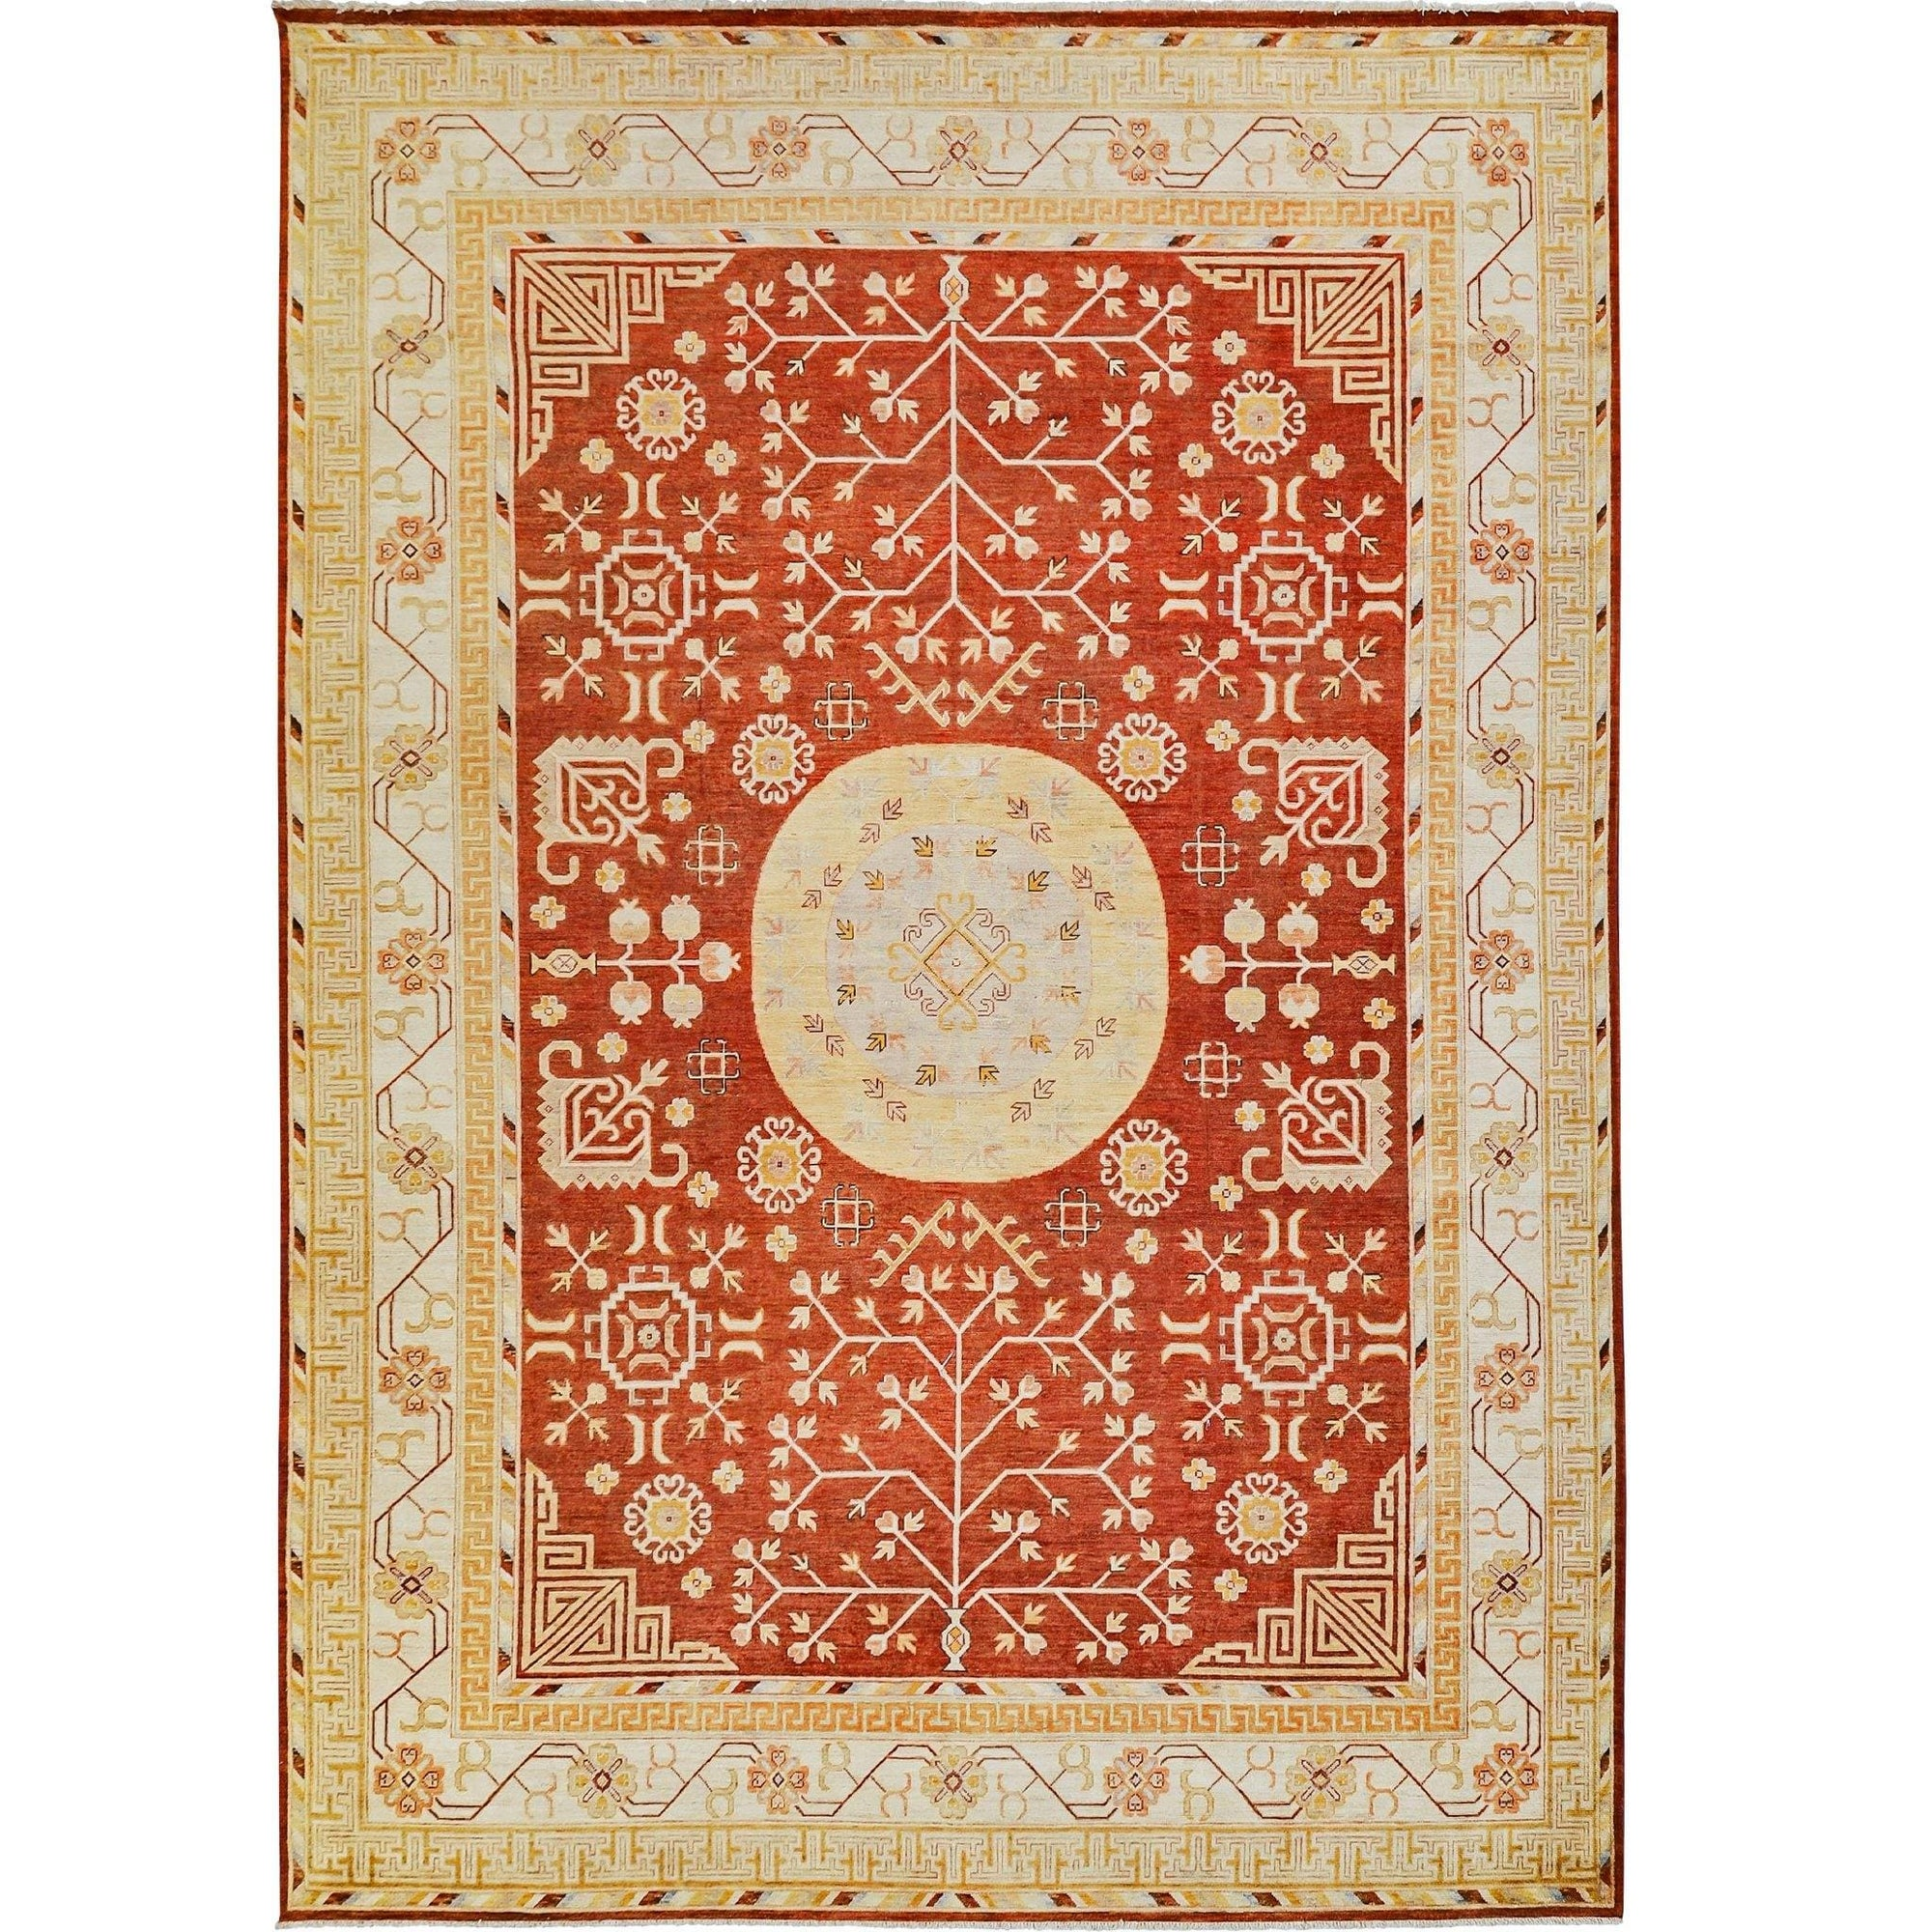 Fine Hand-knotted Wool Rug 274cm x 355cm Persian-Rug | House-of-Haghi | NewMarket | Auckland | NZ | Handmade Persian Rugs | Hand Knotted Persian Rugs